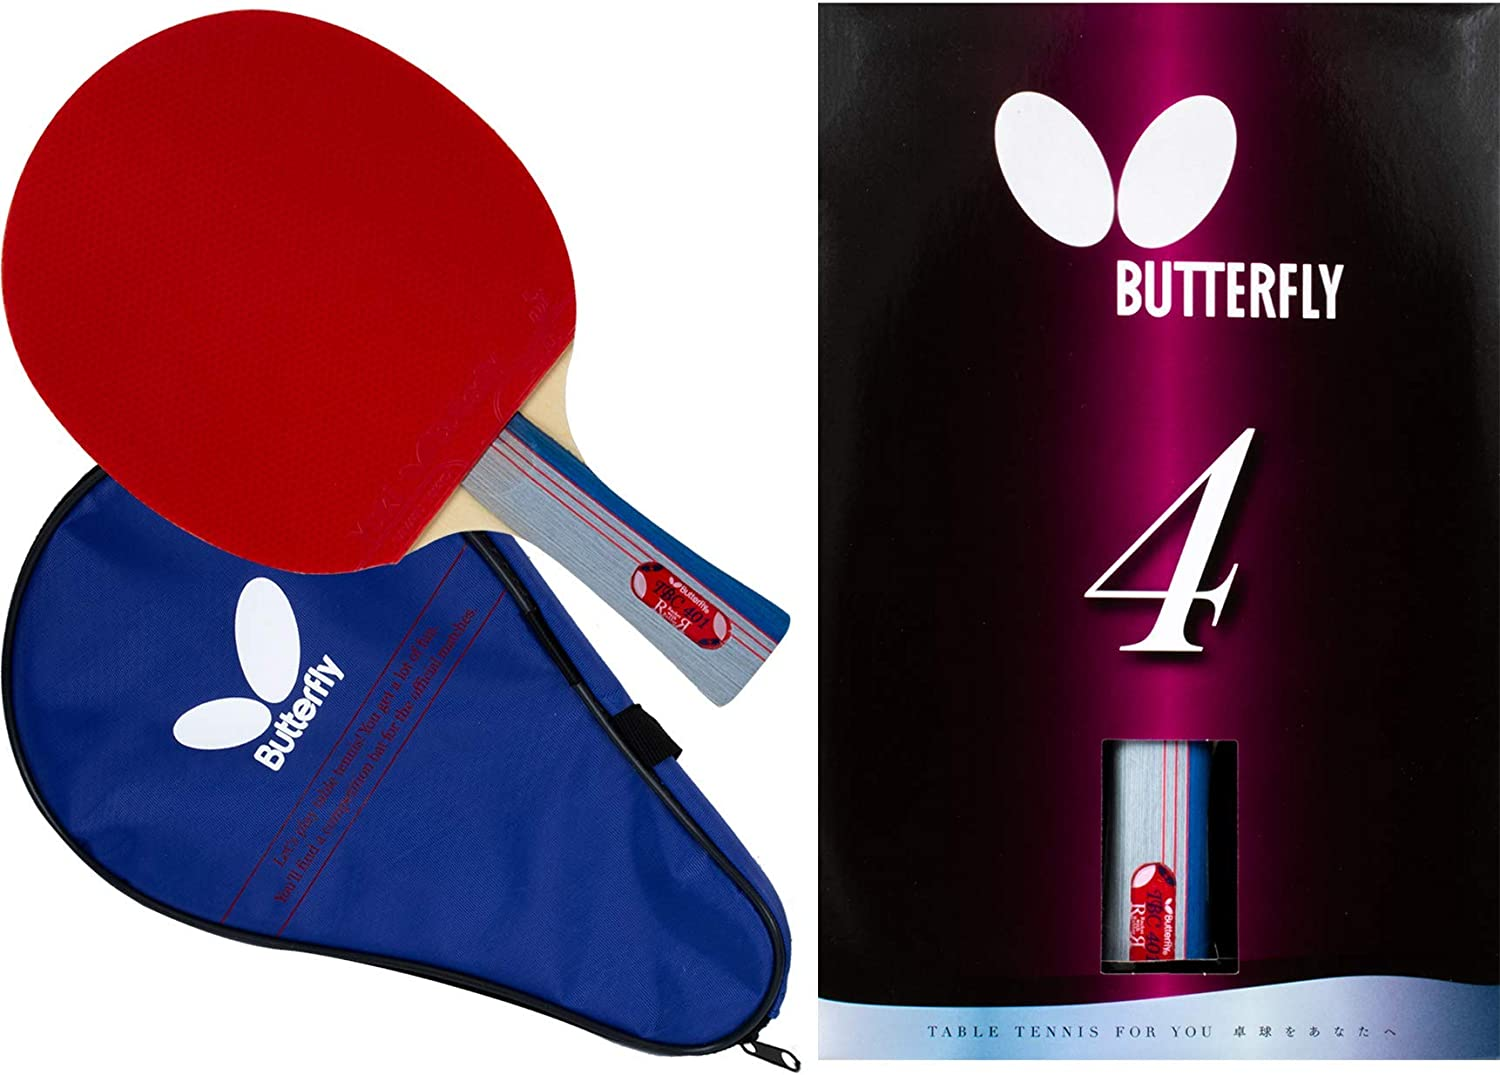 Butterfly 401 Table Tennis Racket Set - 1 Ping Pong Paddle – 1 Ping Pong Paddle Case - ITTF Approved Table Tennis Paddle - Ships in Ping Pong Racket Gift Box : Beginner Table Tennis Rackets : Sports & Outdoors